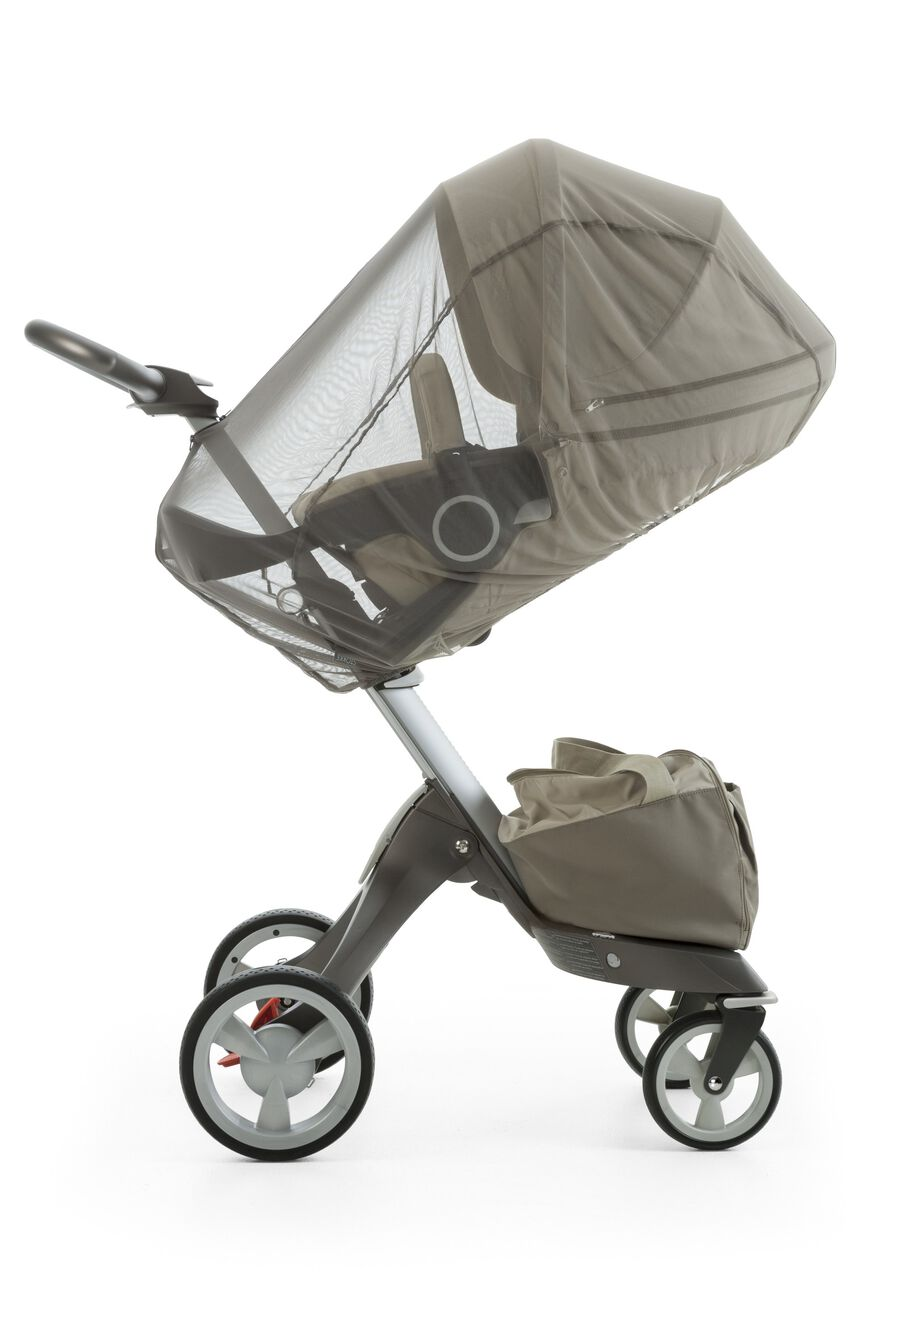 Stokke® Xplory® with Stokke® Stroller Seat, Beige. Mosquito Net.